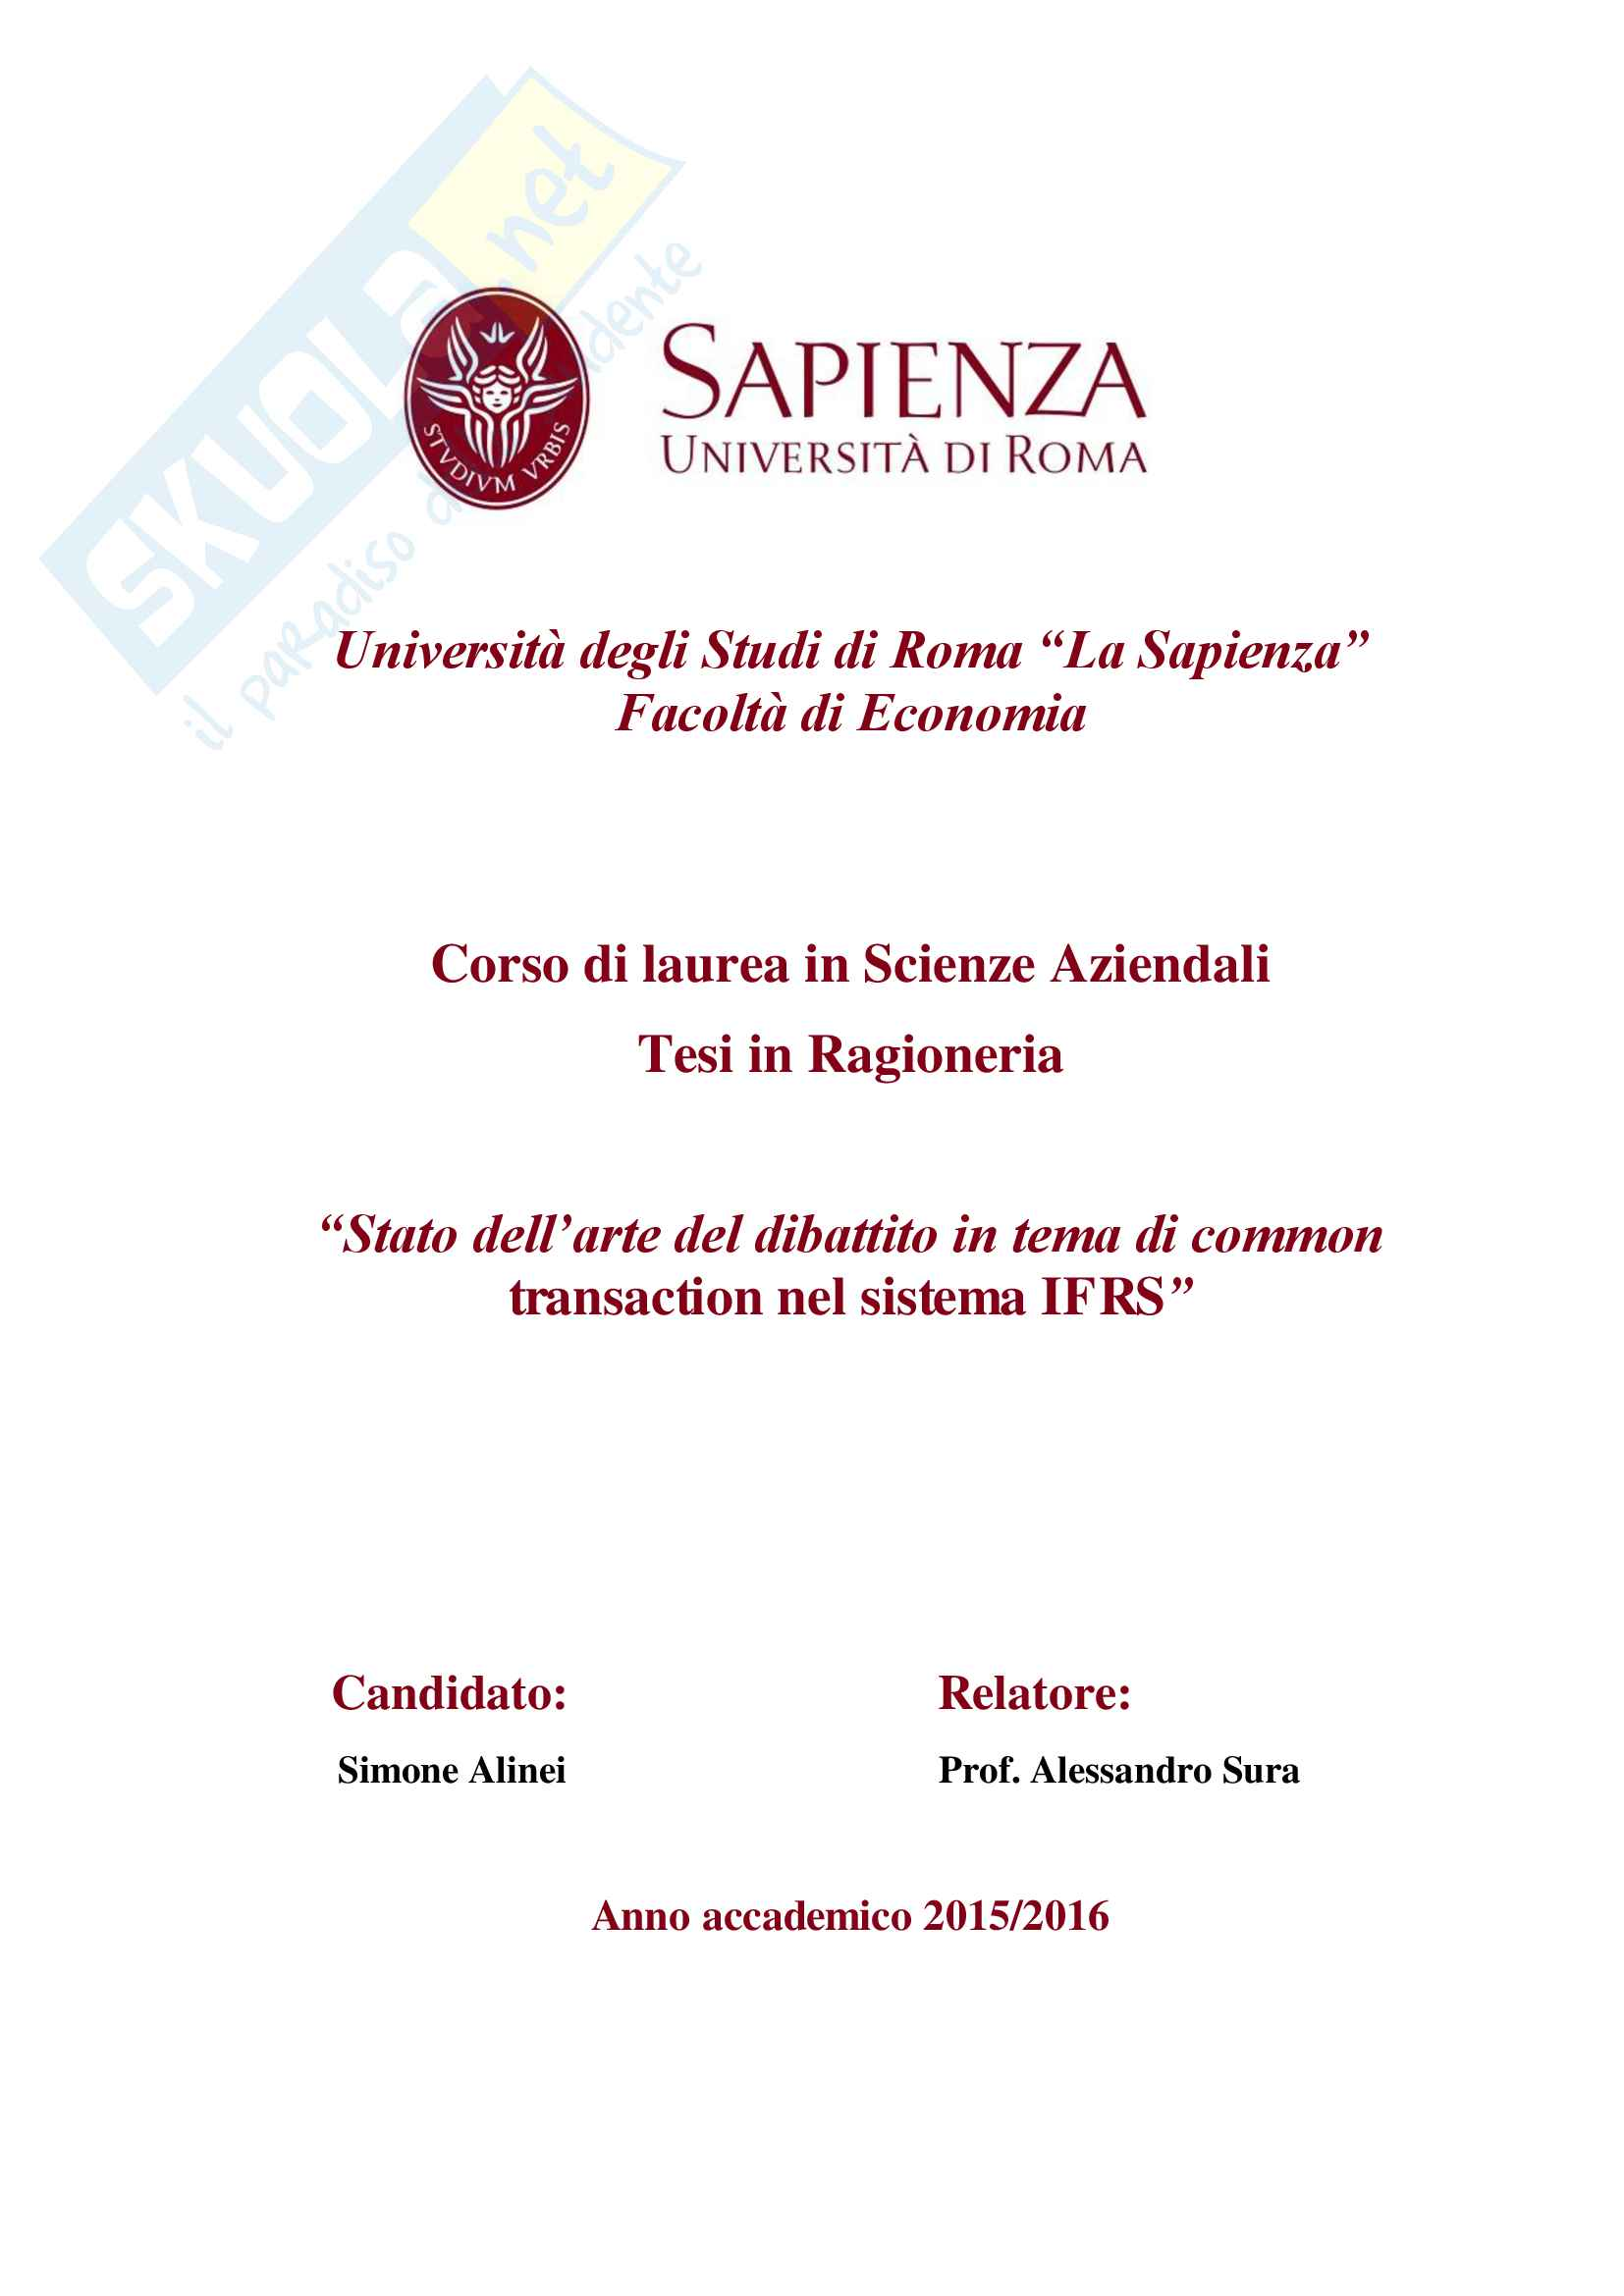 Tesi sulle BCUCC all'interno dell'IFRS 3